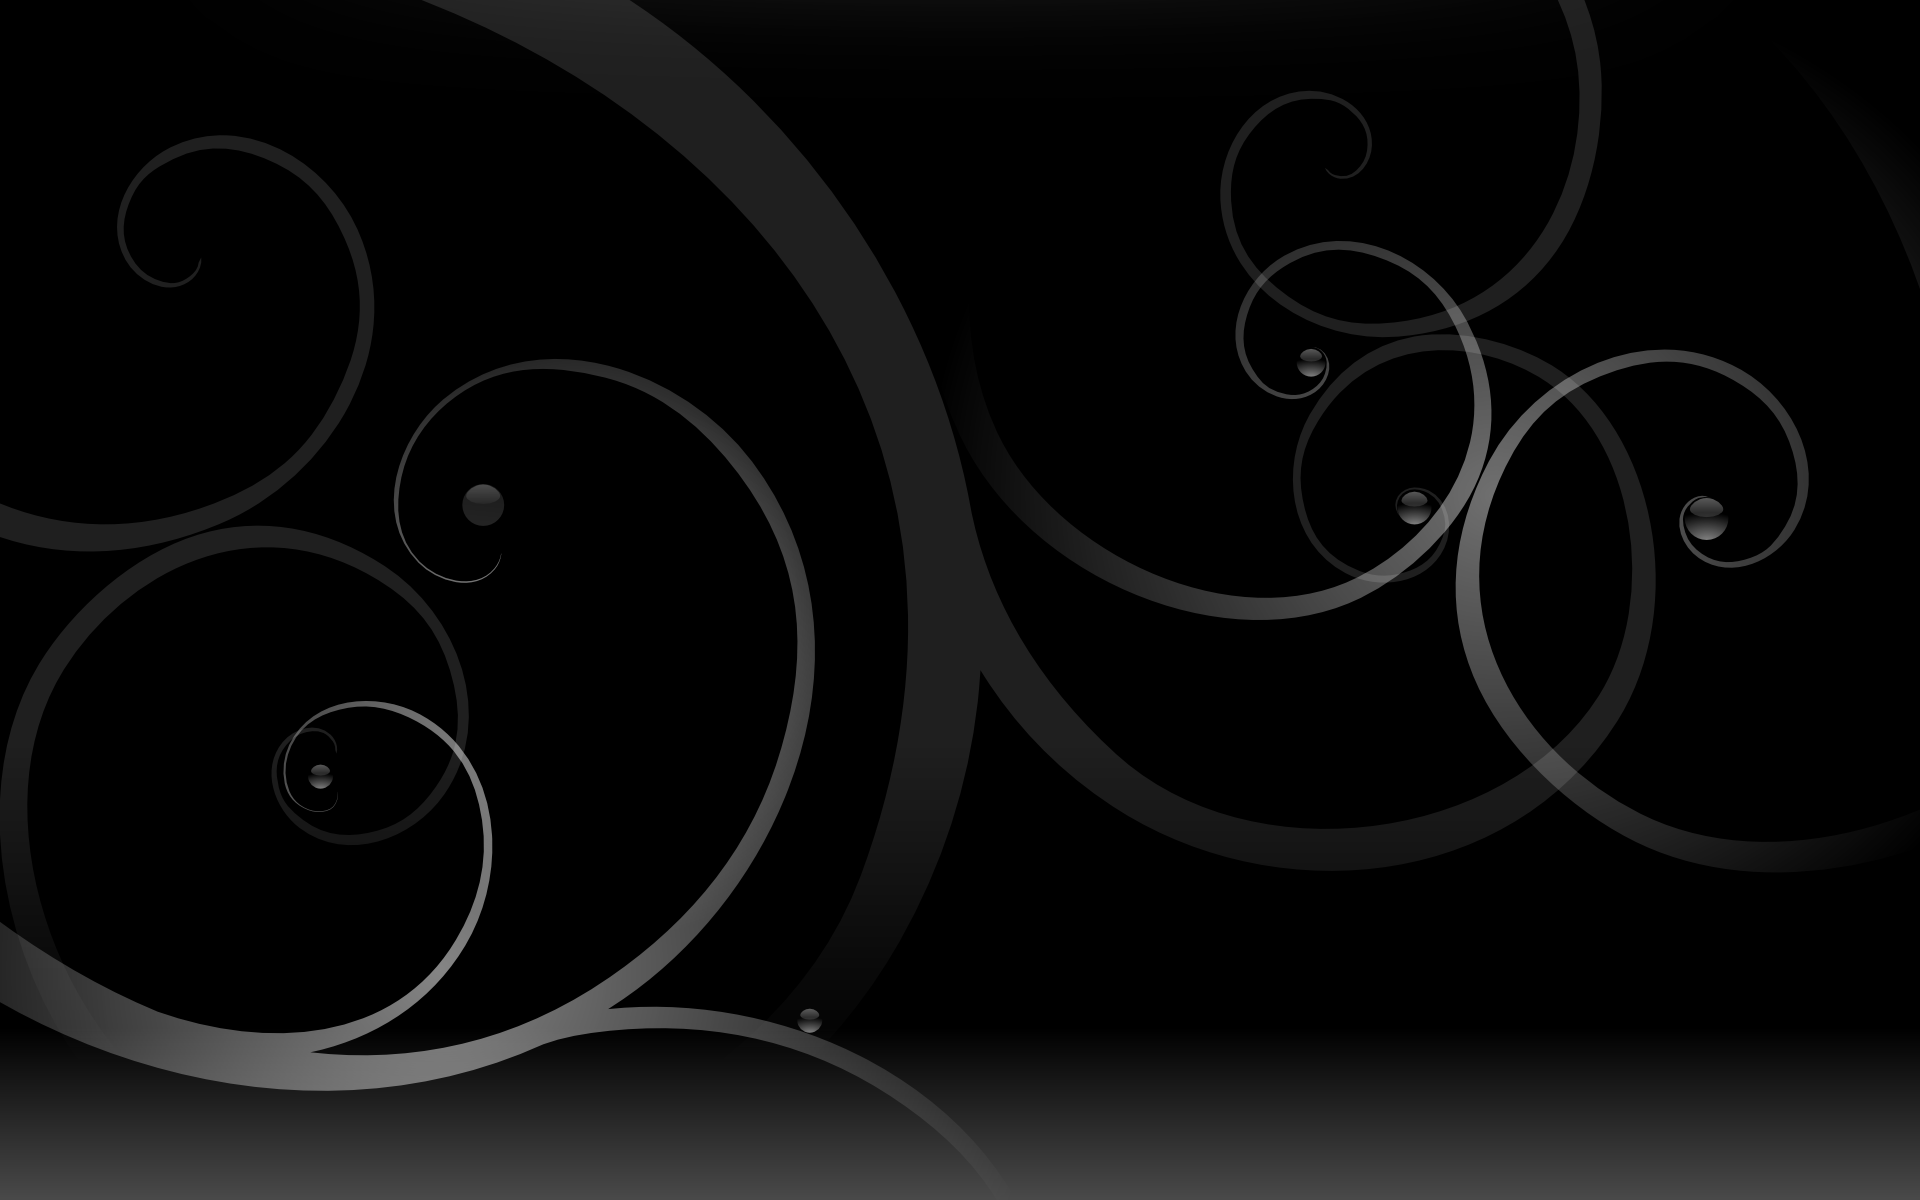 Black swirls wallpaper   73530 1920x1200